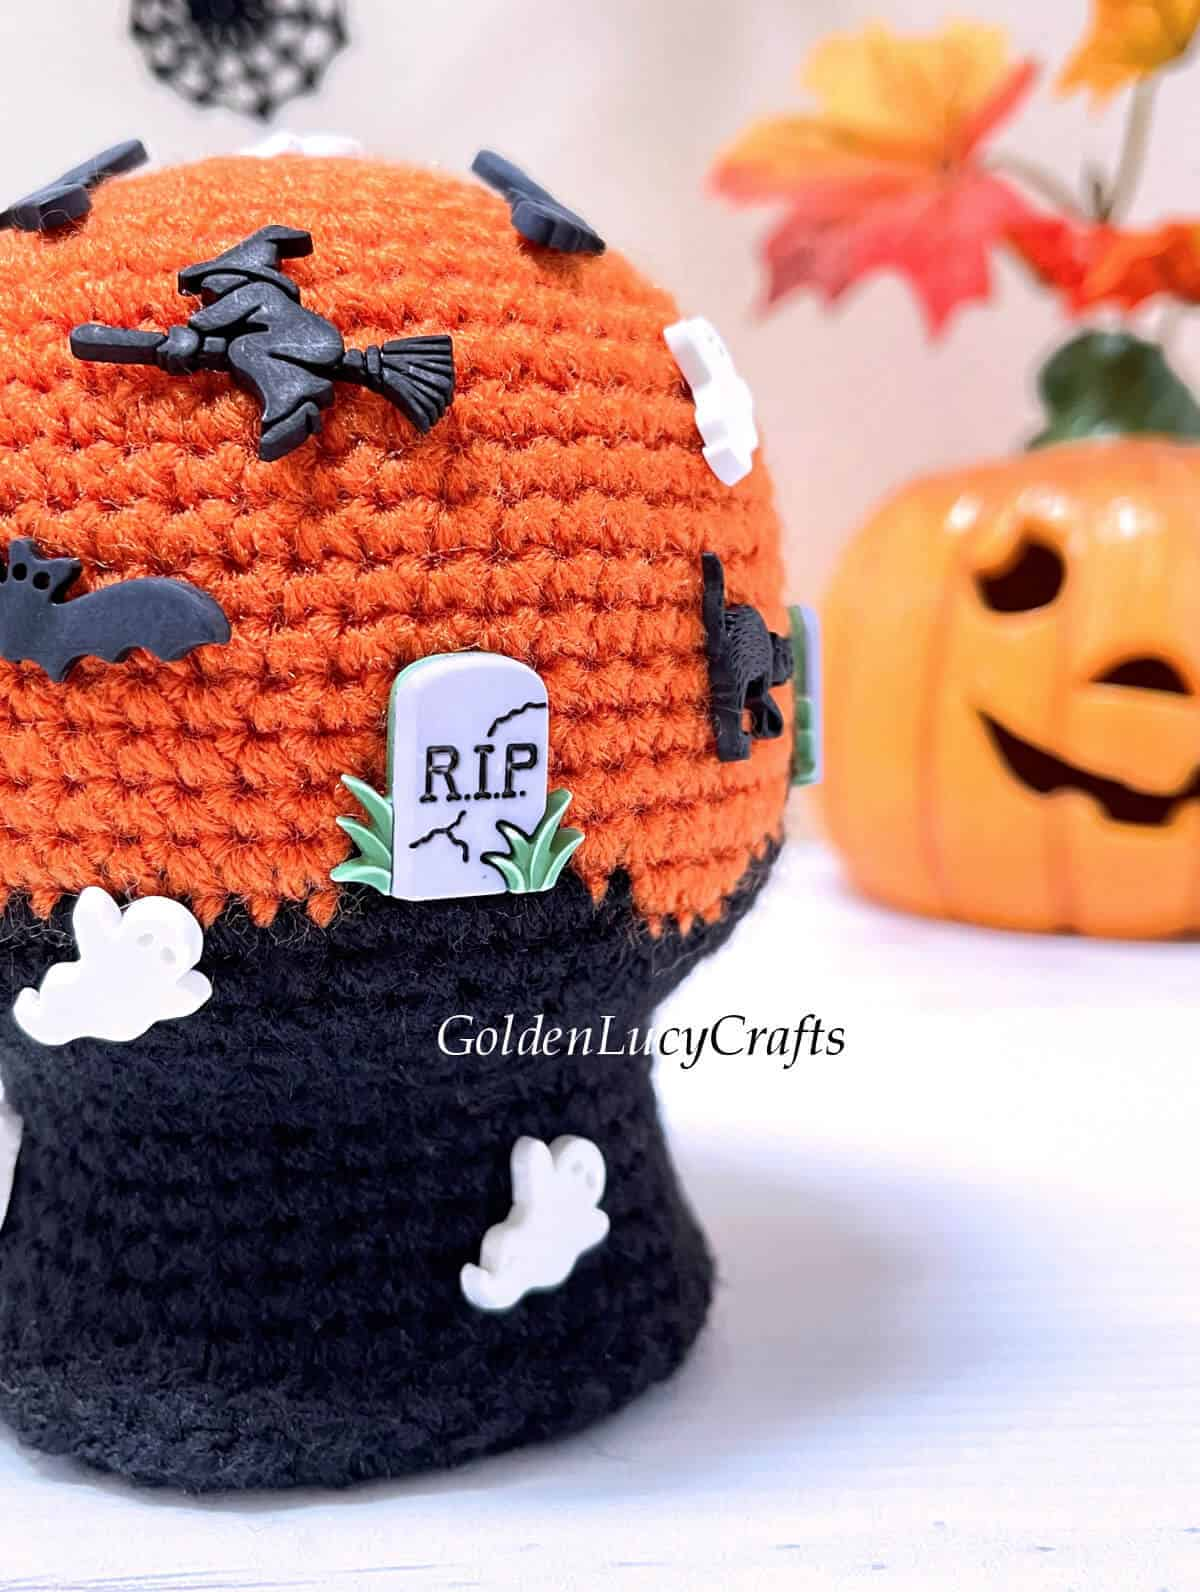 Crocheted Halloween snow globe close up picture, Jack-o'-lantern in the background.